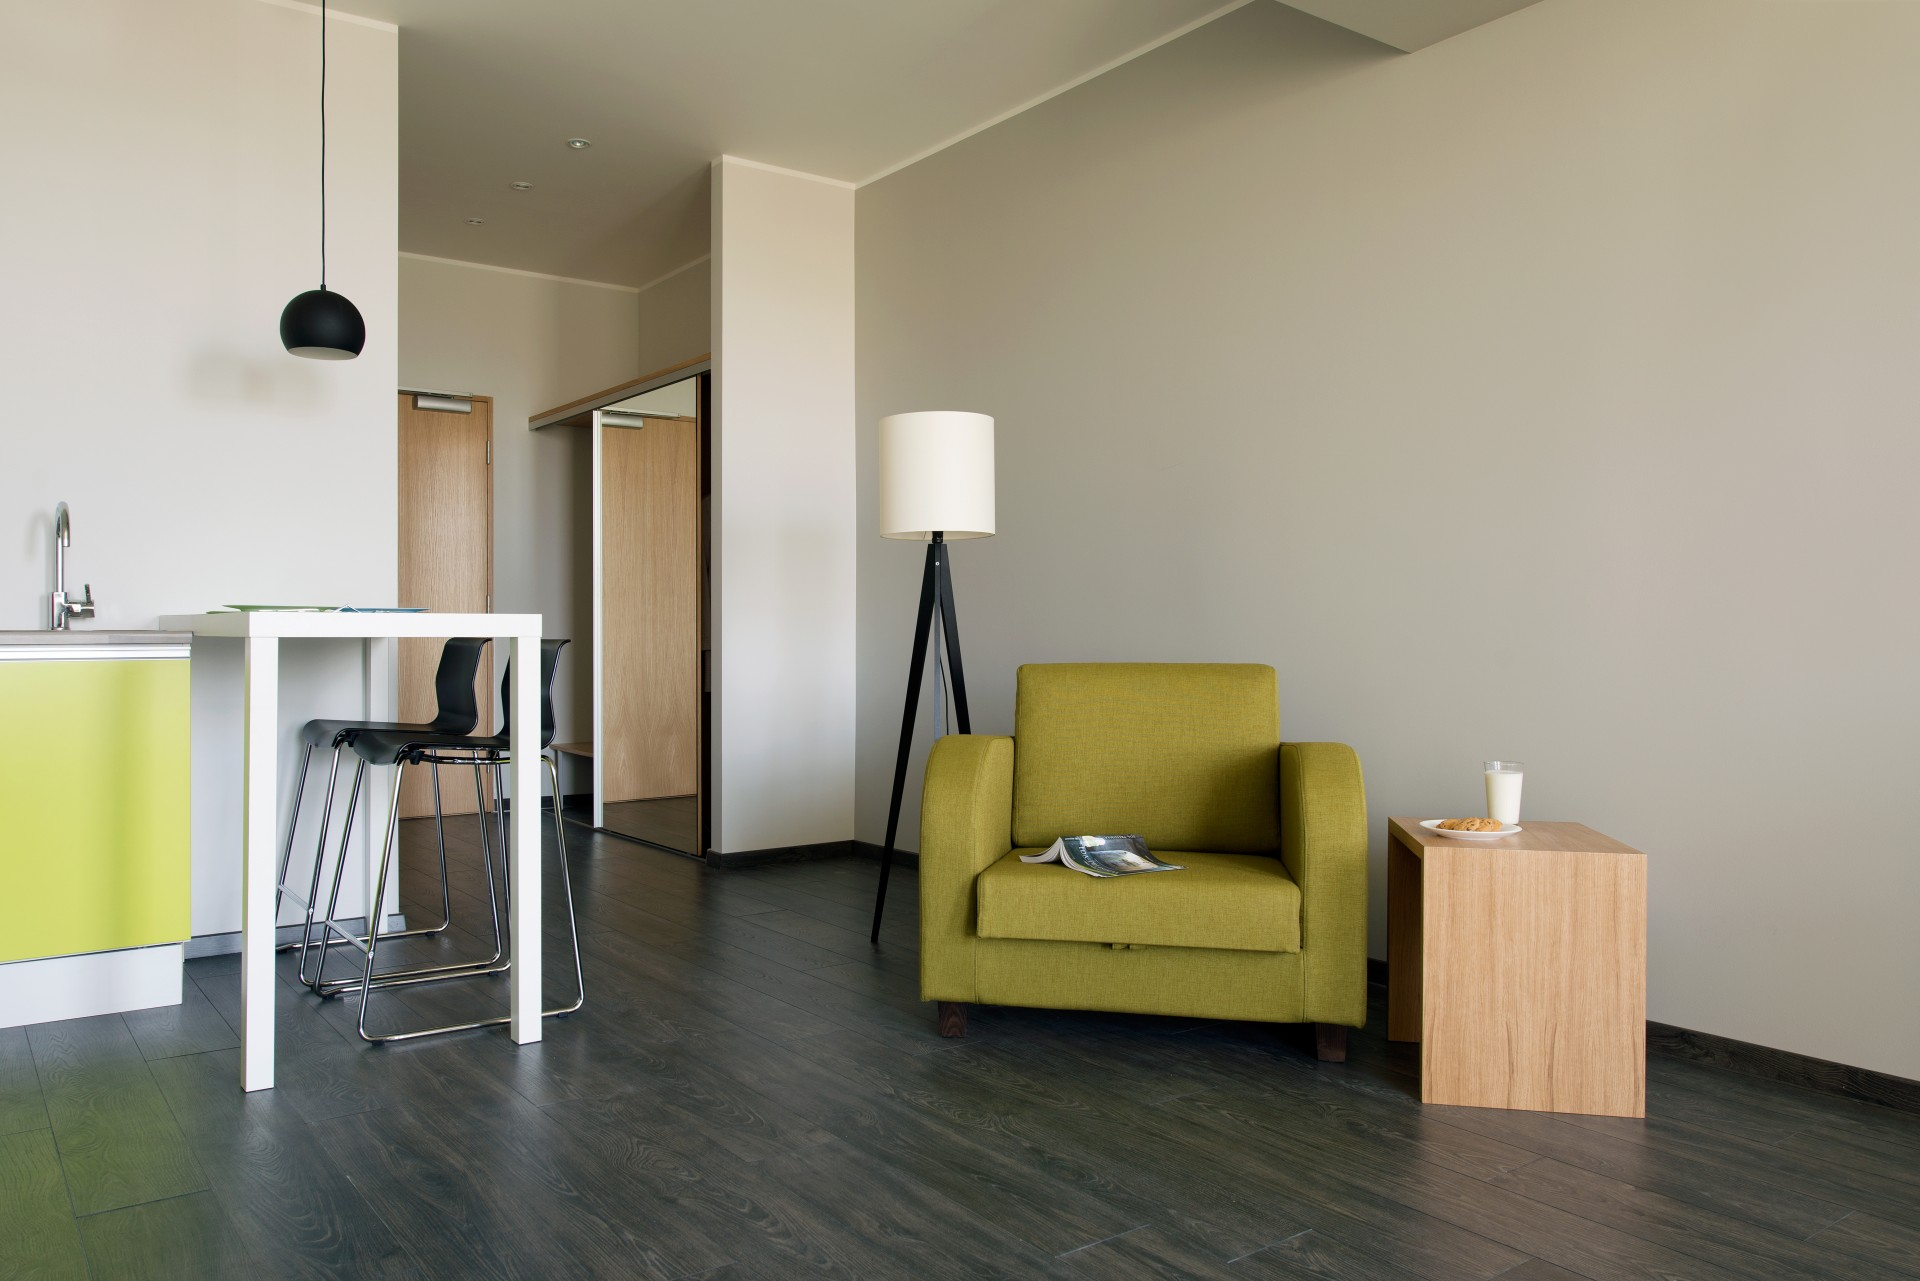 Average family room - Family Room Bathrooms Also Differ From The Other Bathrooms Both Because Of Their Spaciousness And Colours Used The Average Bathroom Size Is 5 M